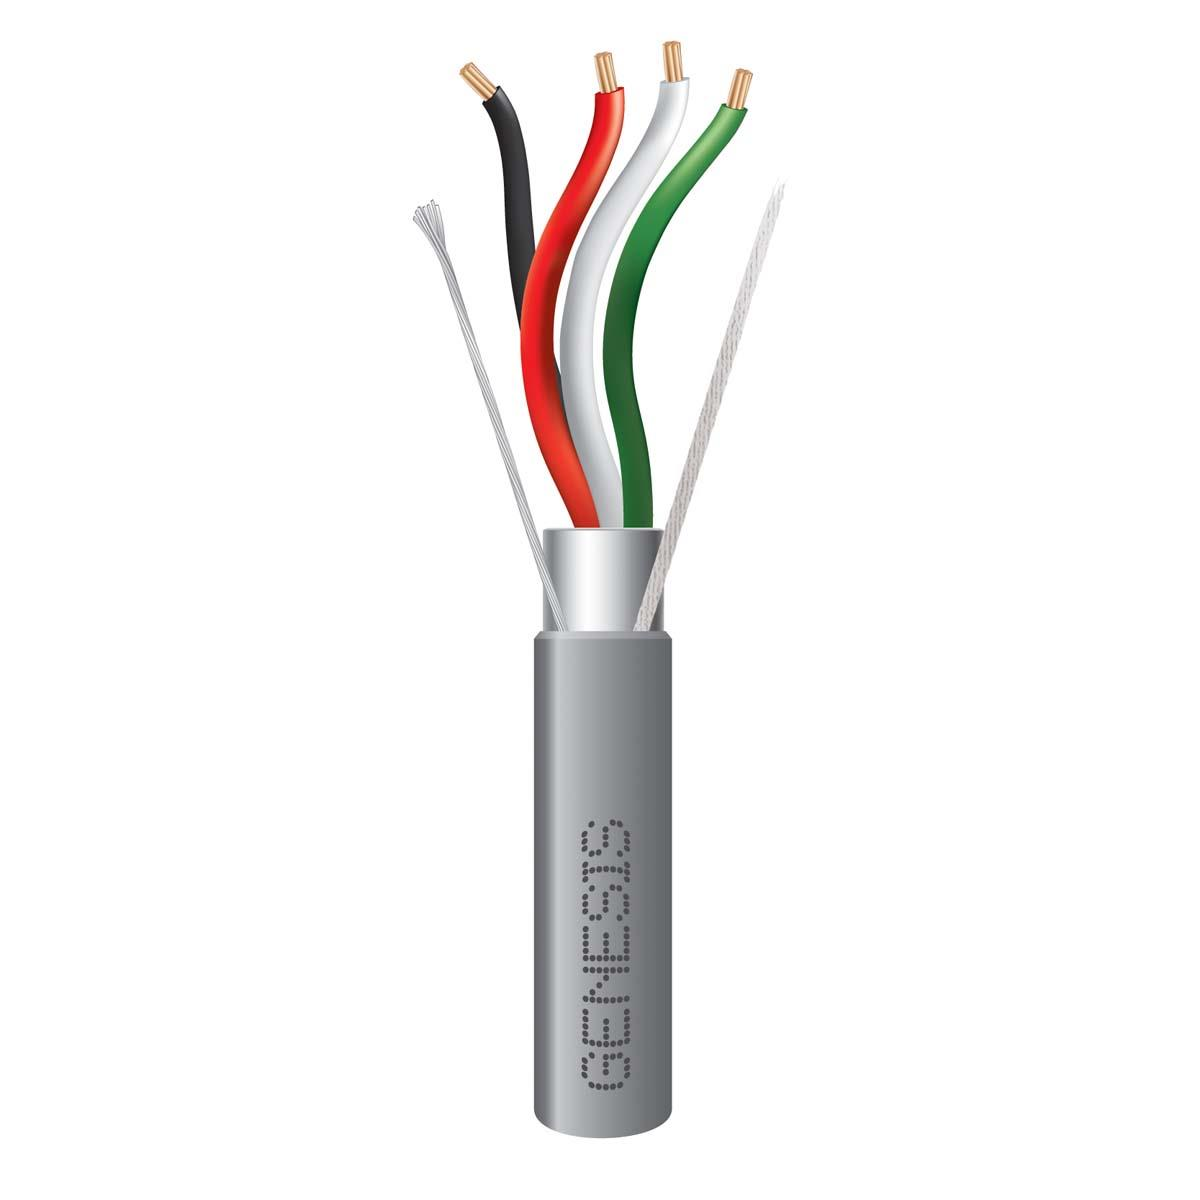 Genesis Cable (Honeywell) 22225009